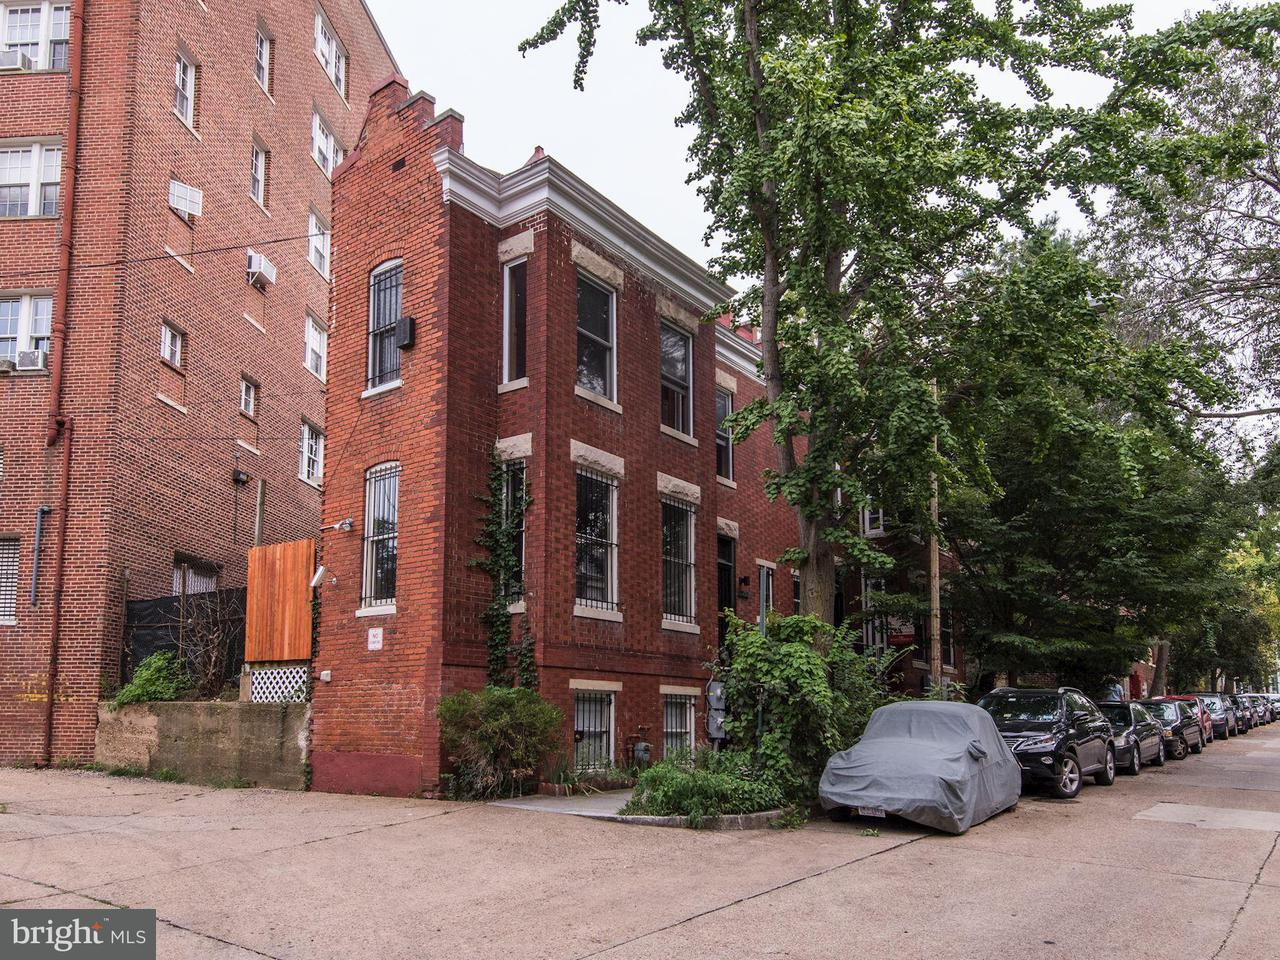 Additional photo for property listing at 2305 17TH ST NW 2305 17TH ST NW Washington, District Of Columbia 20009 United States